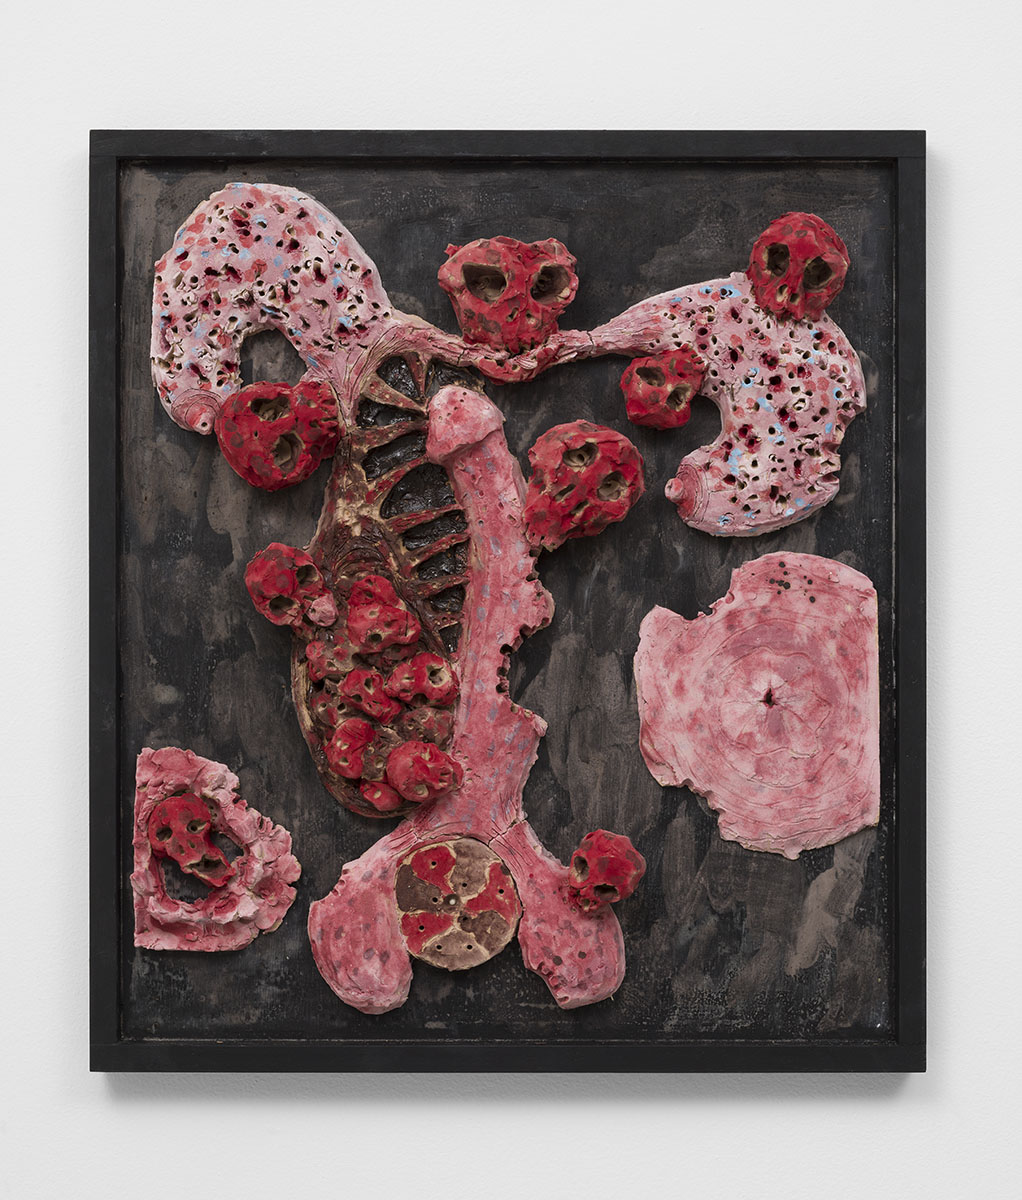 Richard Hawkins - Matriphagous Brood, 2015, glazed ceramic in artist's frame, 25 ¾ x 22 ¾ x 3 ½ inches